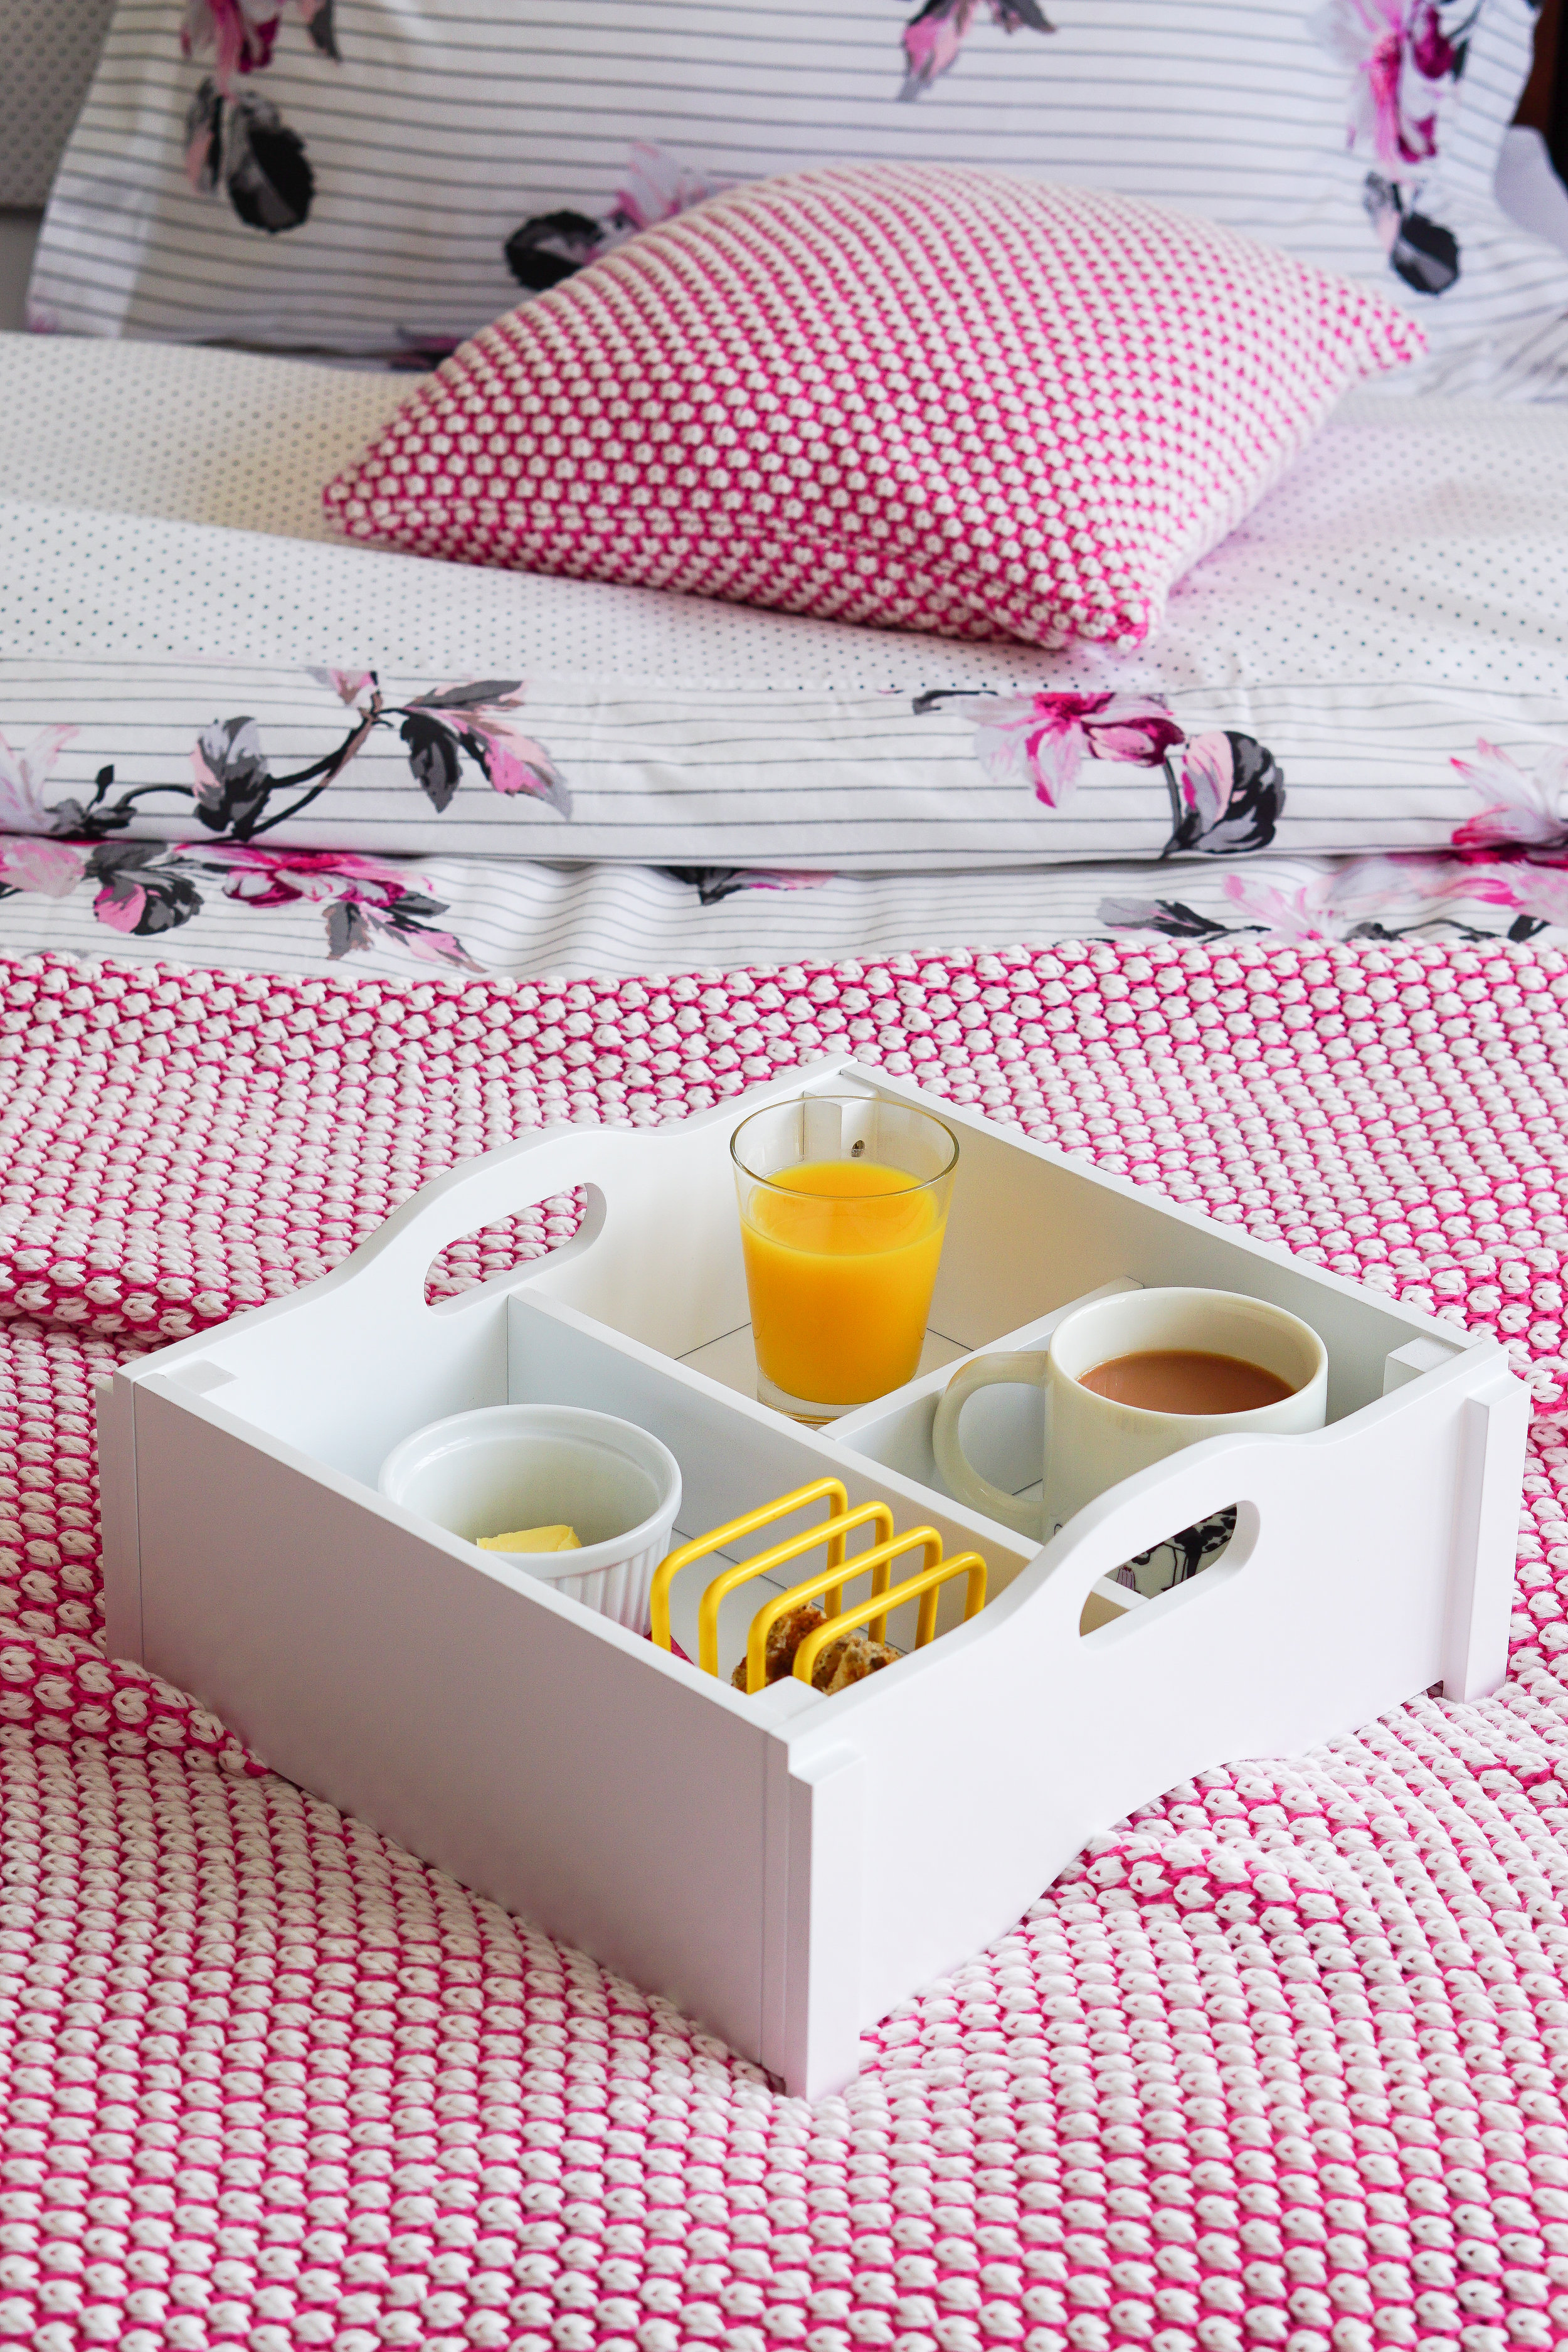 When toy storage doubles up as a super cute breakfast in bed tray